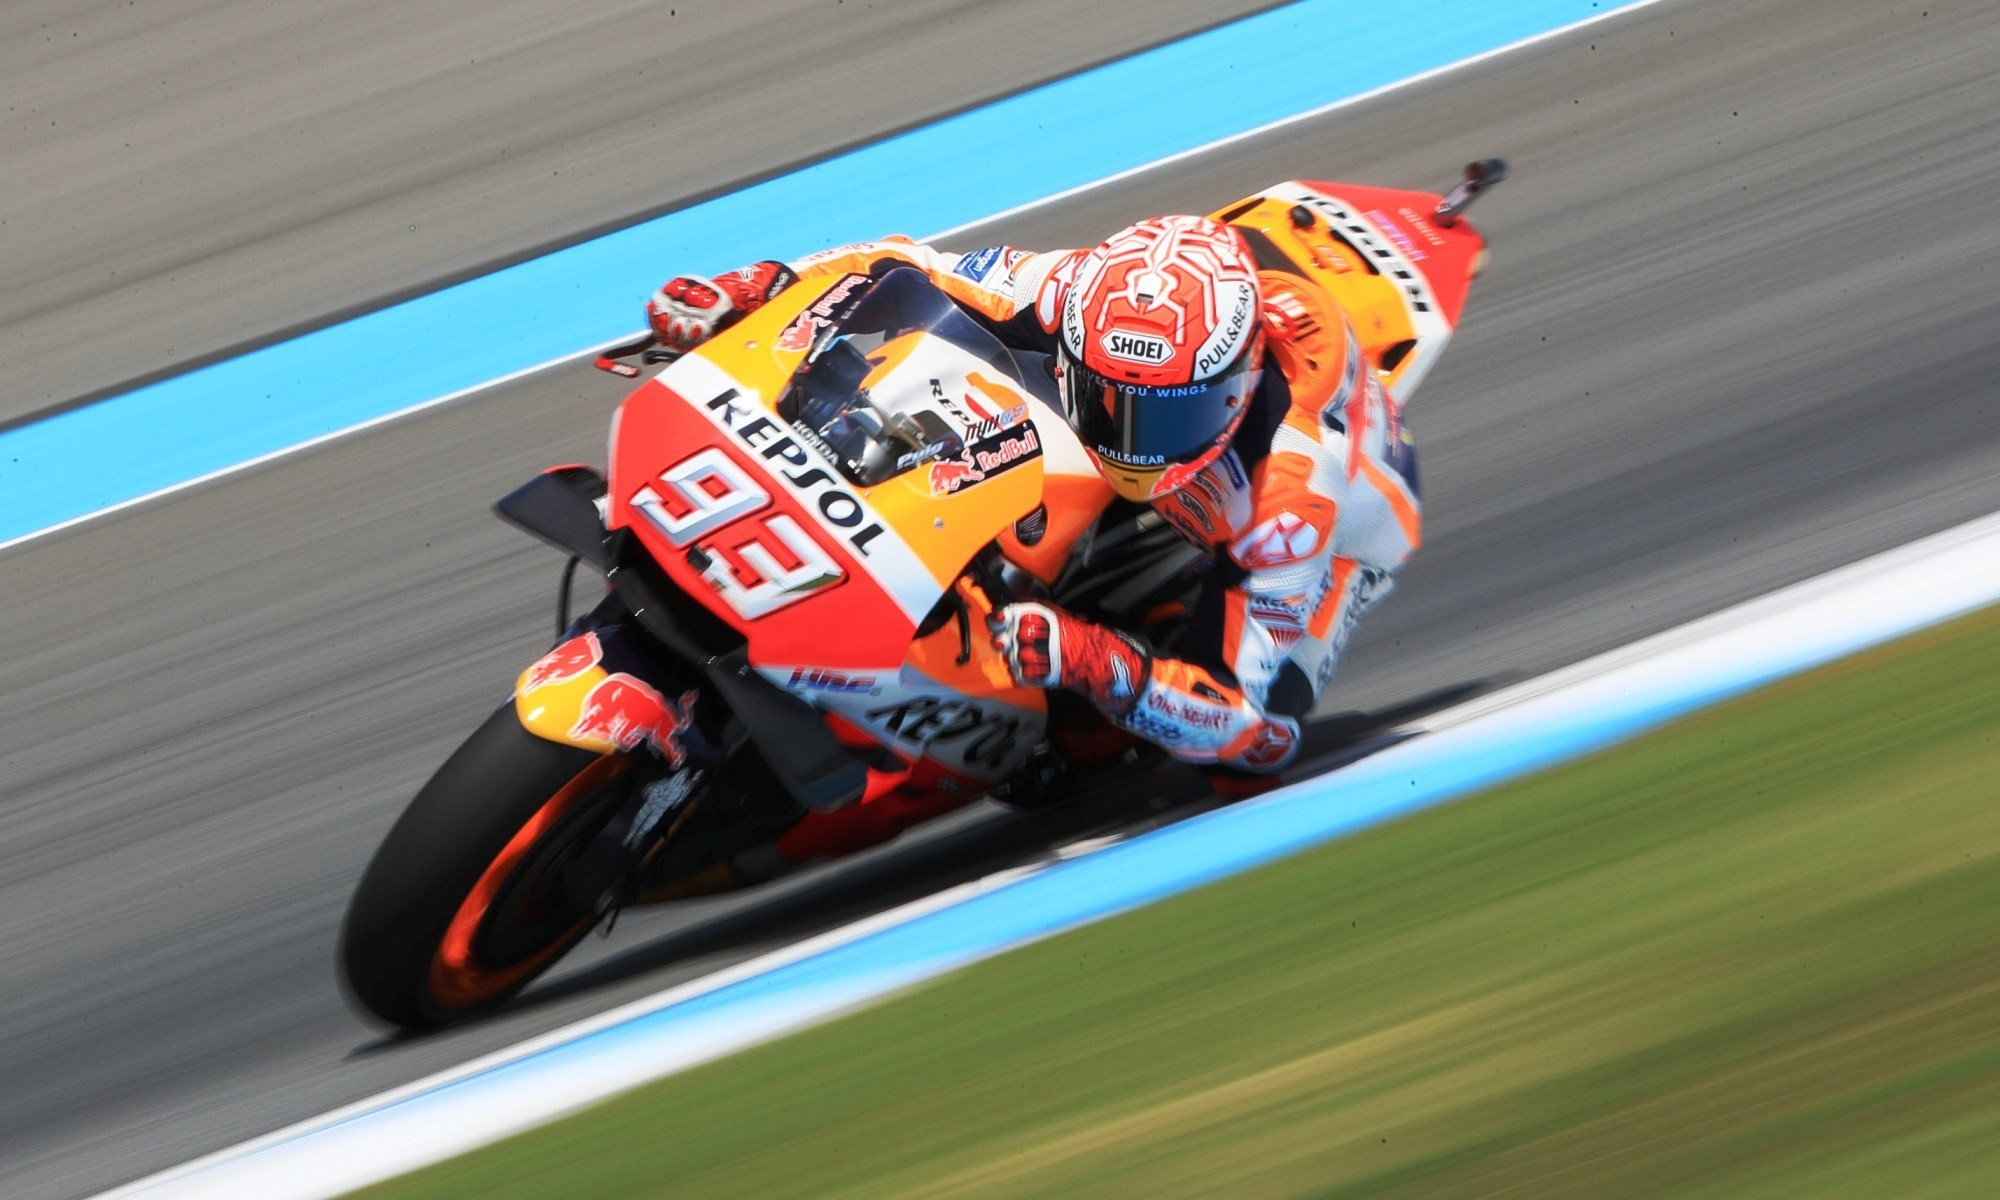 Marquez won the MotoGP race in Thailand